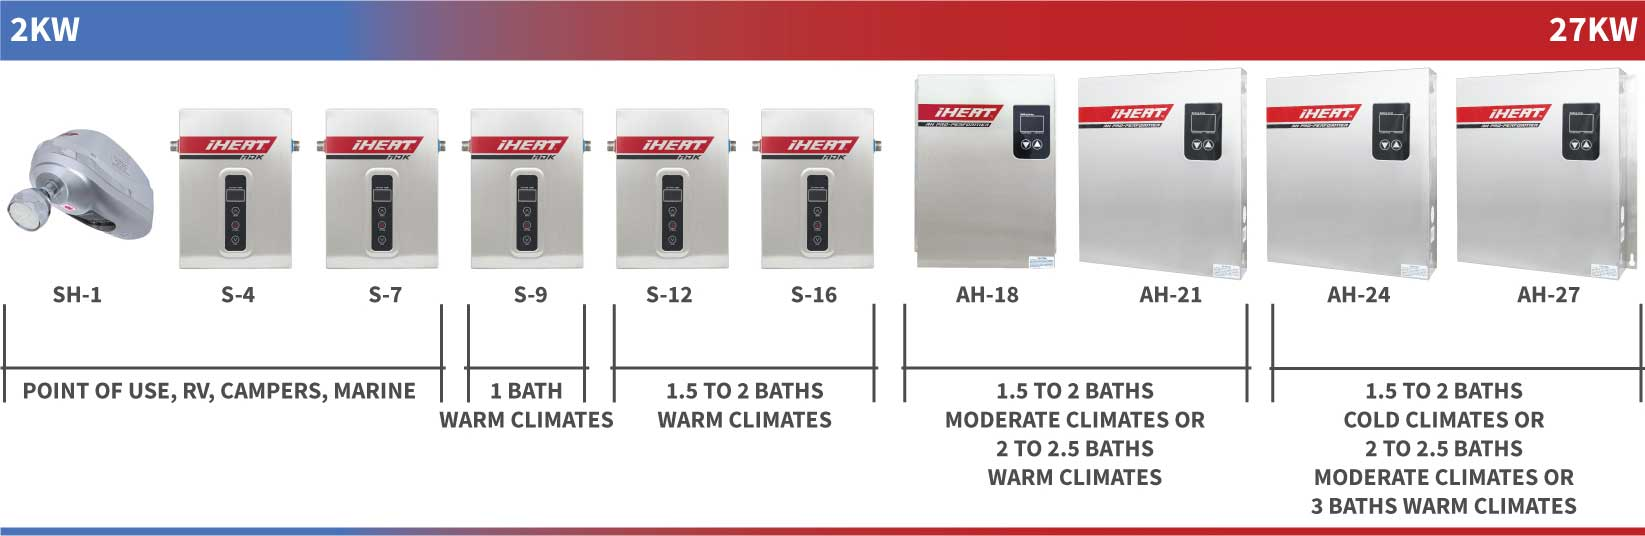 iHeat tankless water heater size guide displaying heaters from smallest to biggest.